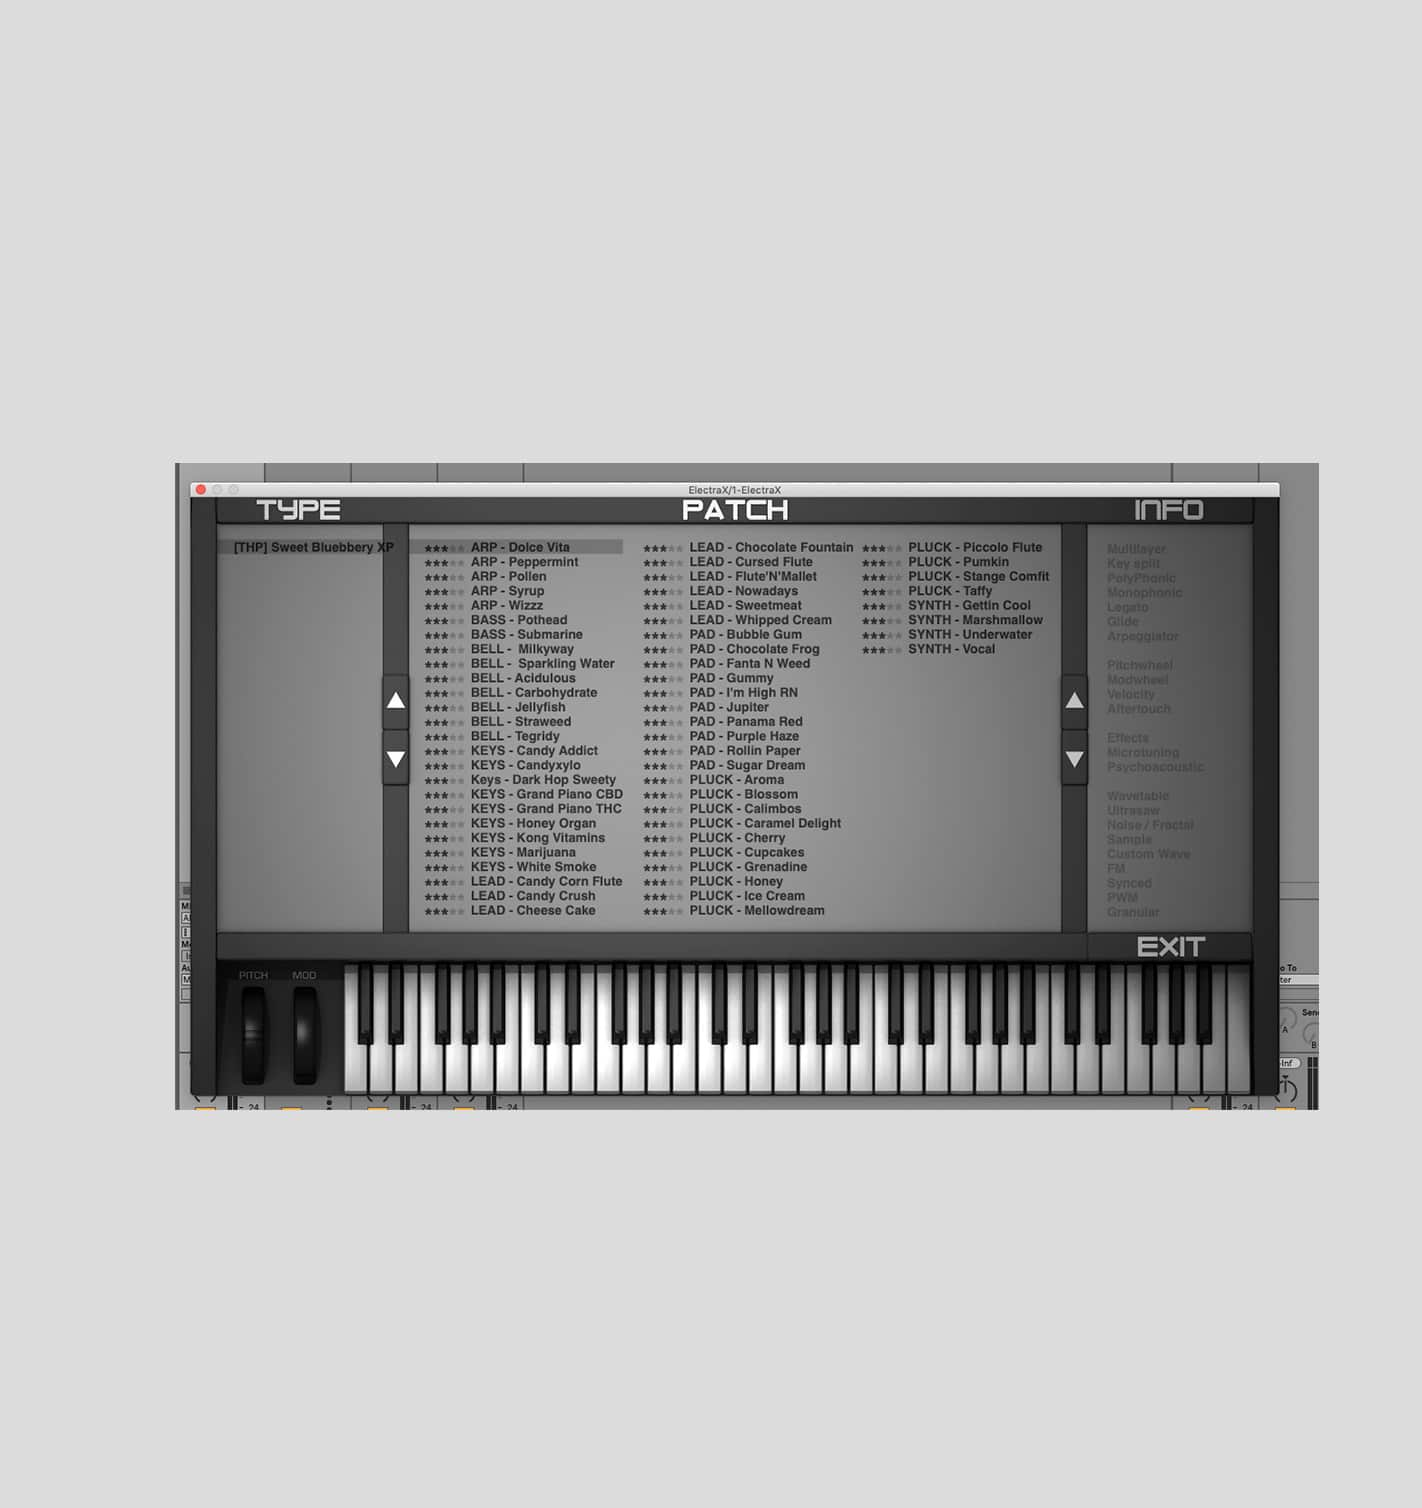 Including Keys, Leads, Pads, Synth, BAss